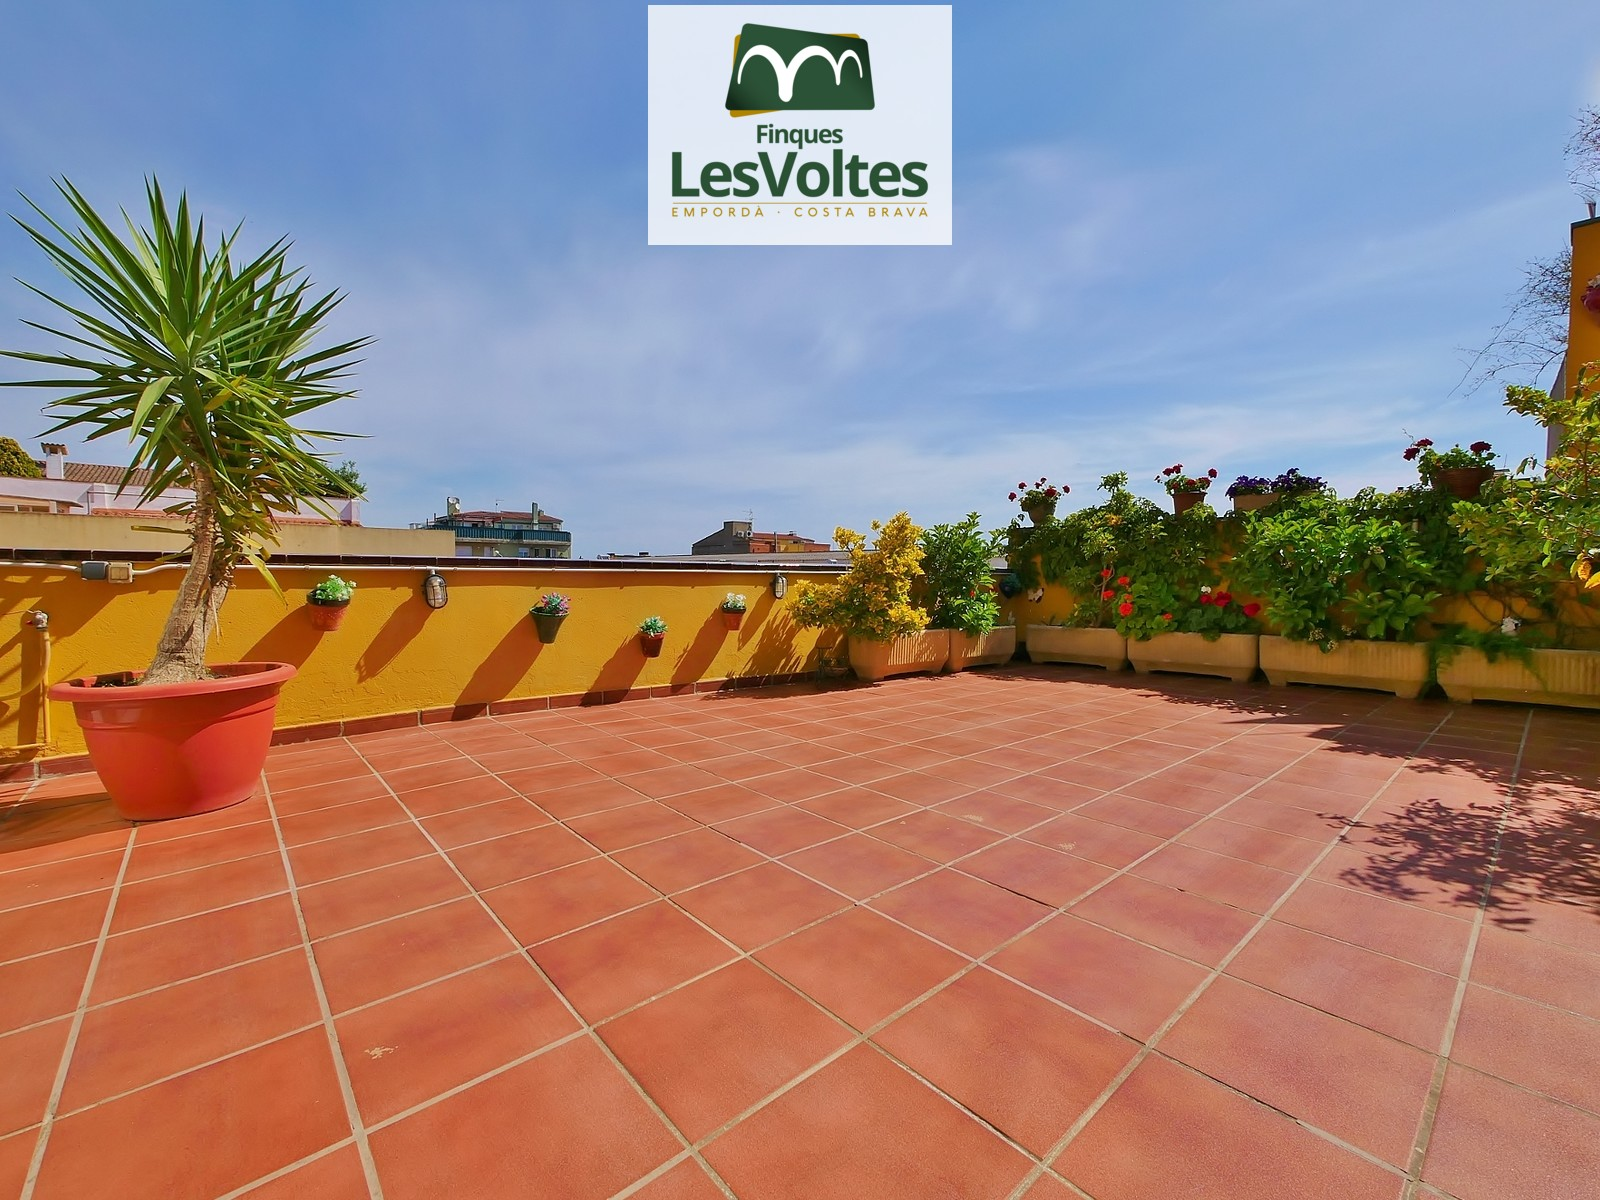 SPACIOUS APARTMENT OF 110 M2 WITH LARGE TERRAZZA OF 60 M2 IN GOOD SITUATION NEAR THE CENTER OF PALAFRUGELL. PARKING SPACE INC